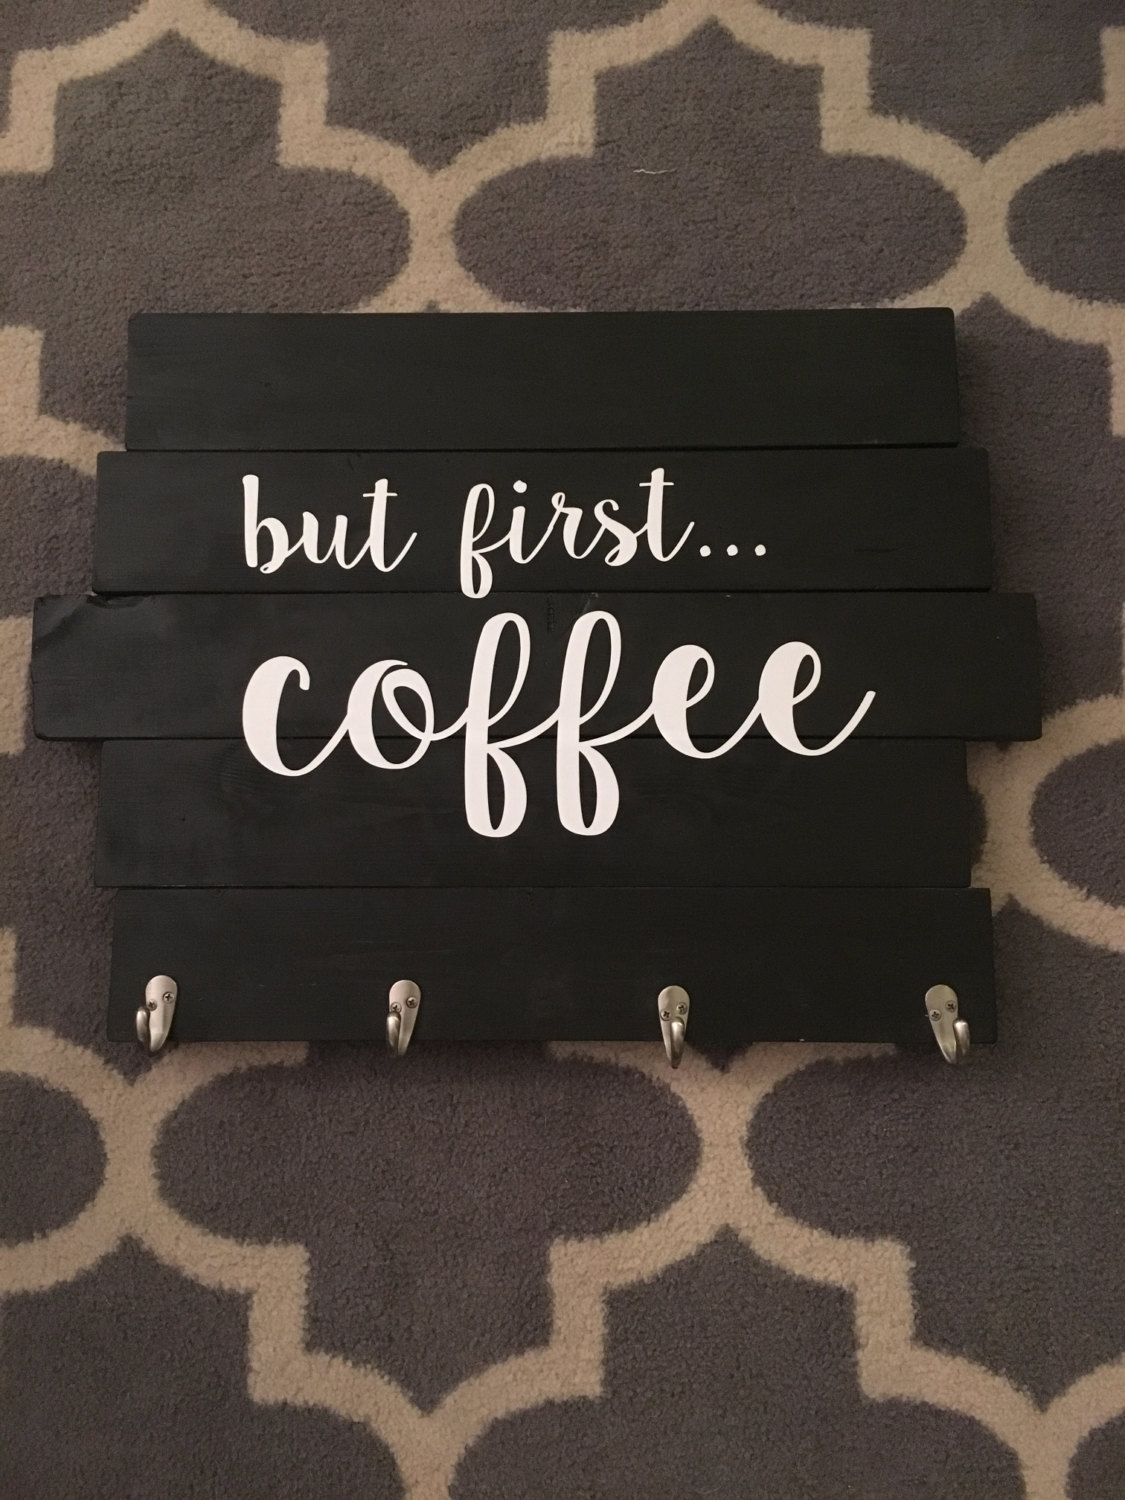 15 Awesome Handmade Coffee Mug Racks For The Coffee Junkies Out There